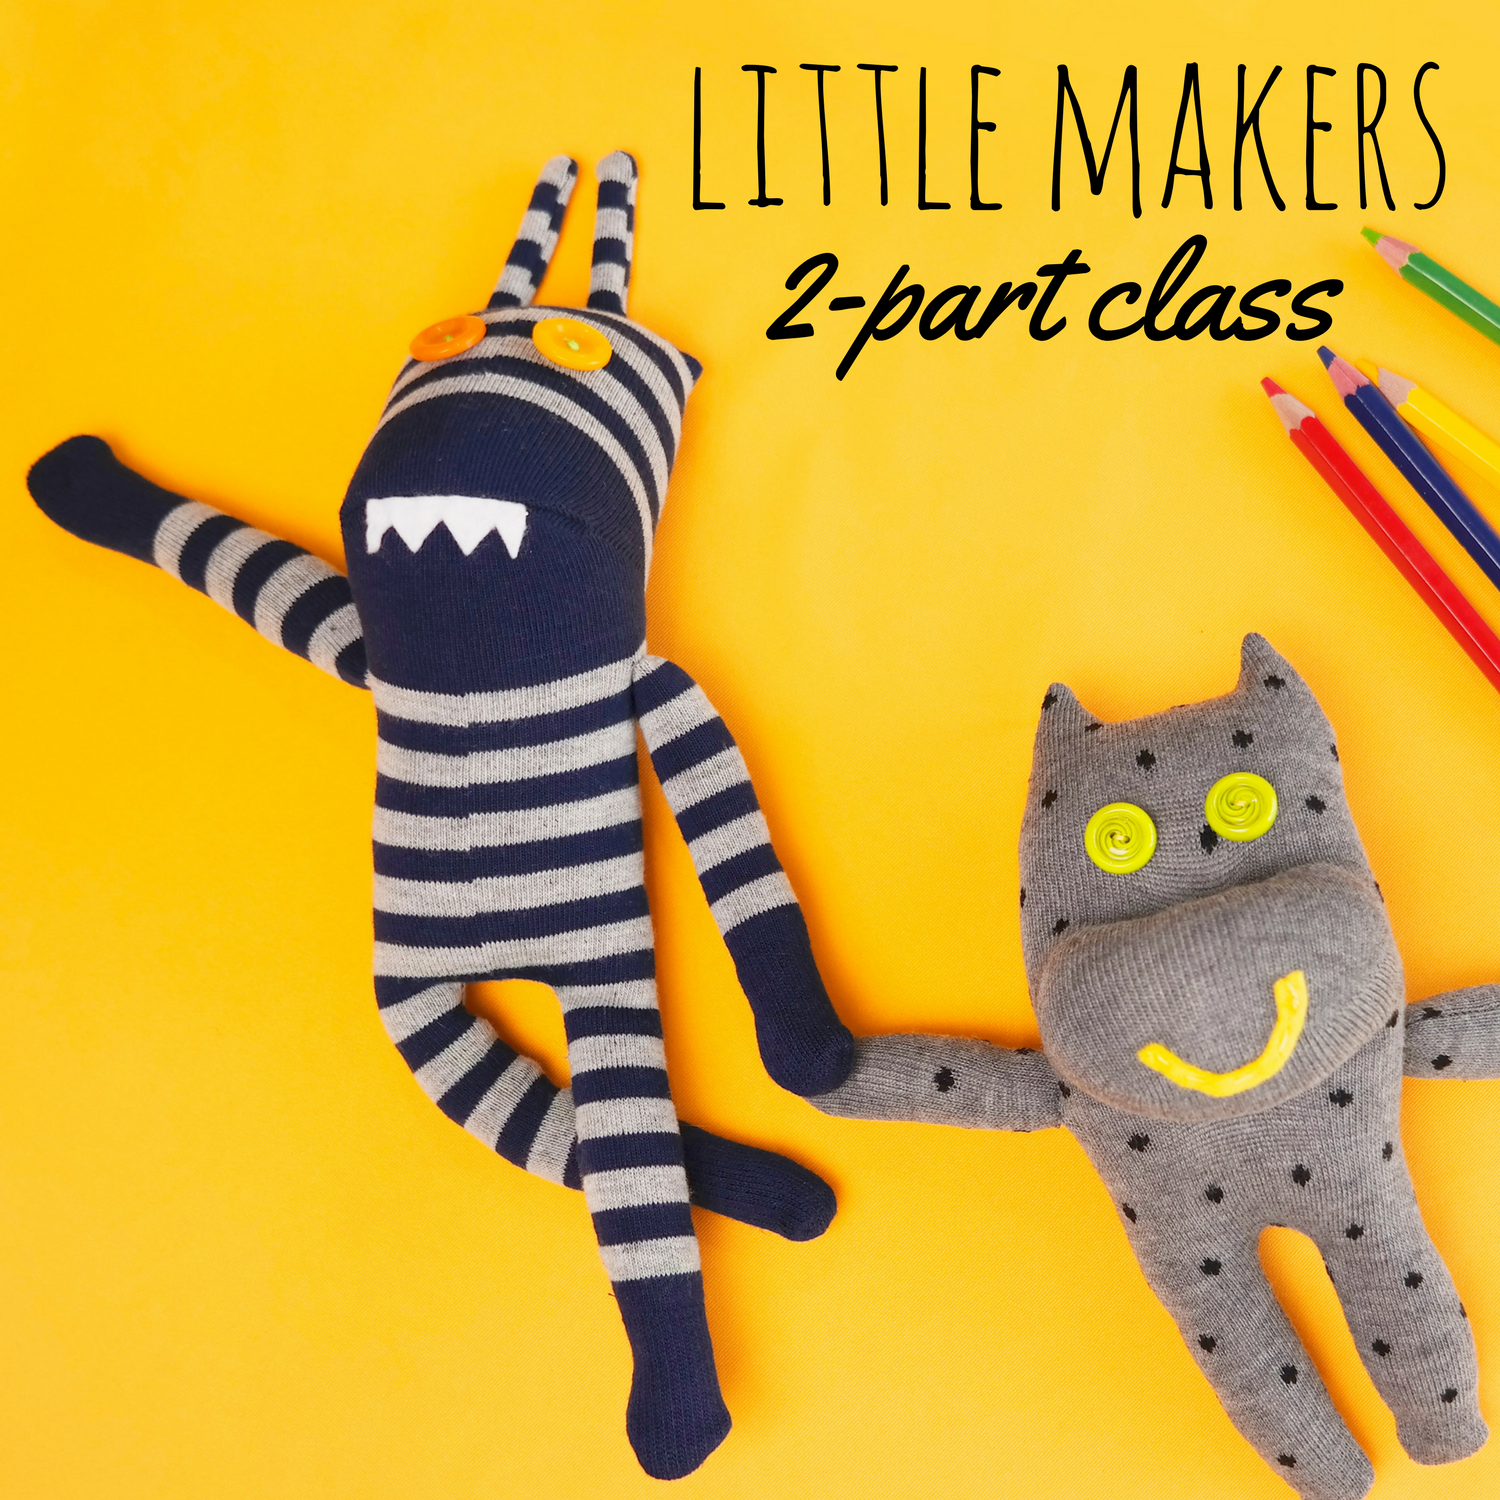 Little Makers - 2-part class.png